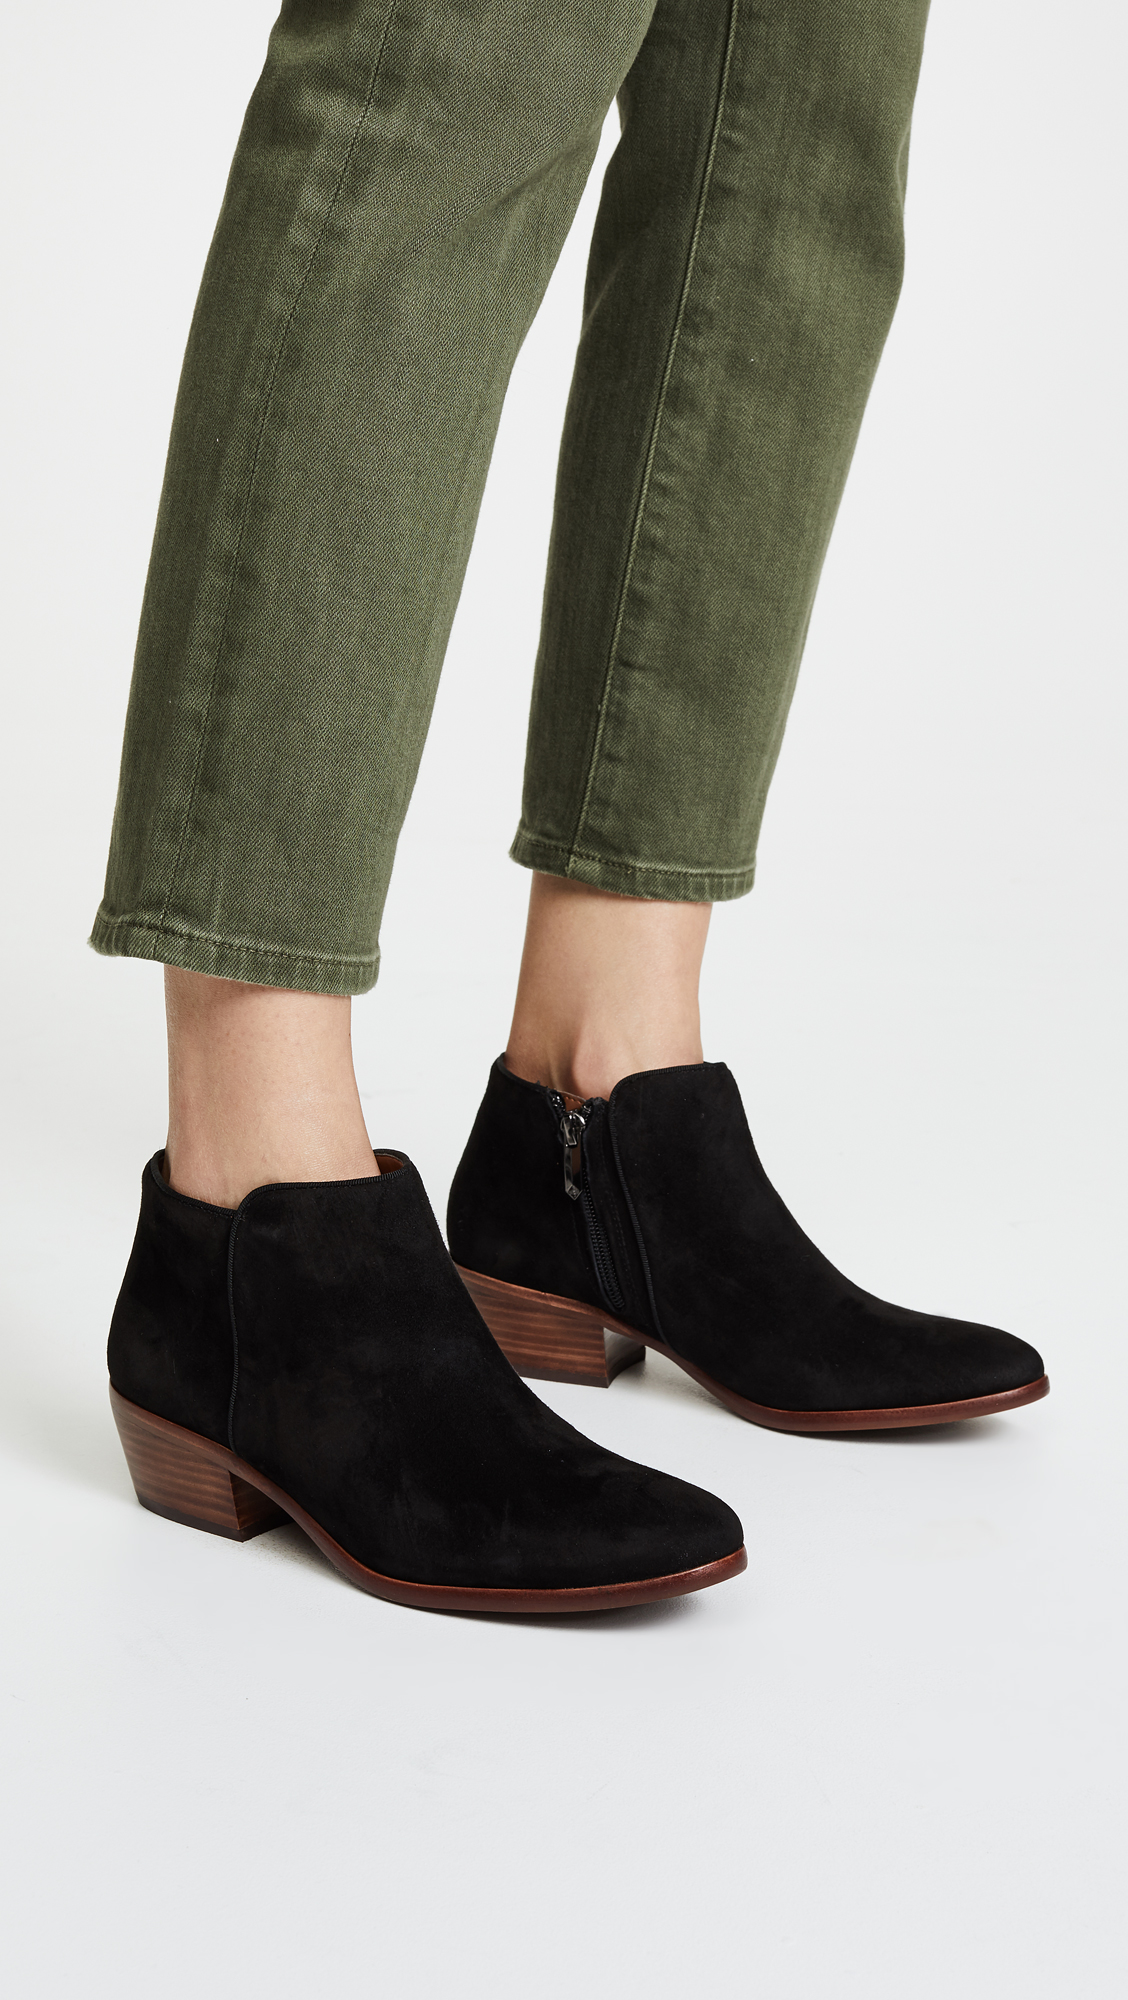 13b3b20164d0a1 Sam Edelman Petty Suede Booties